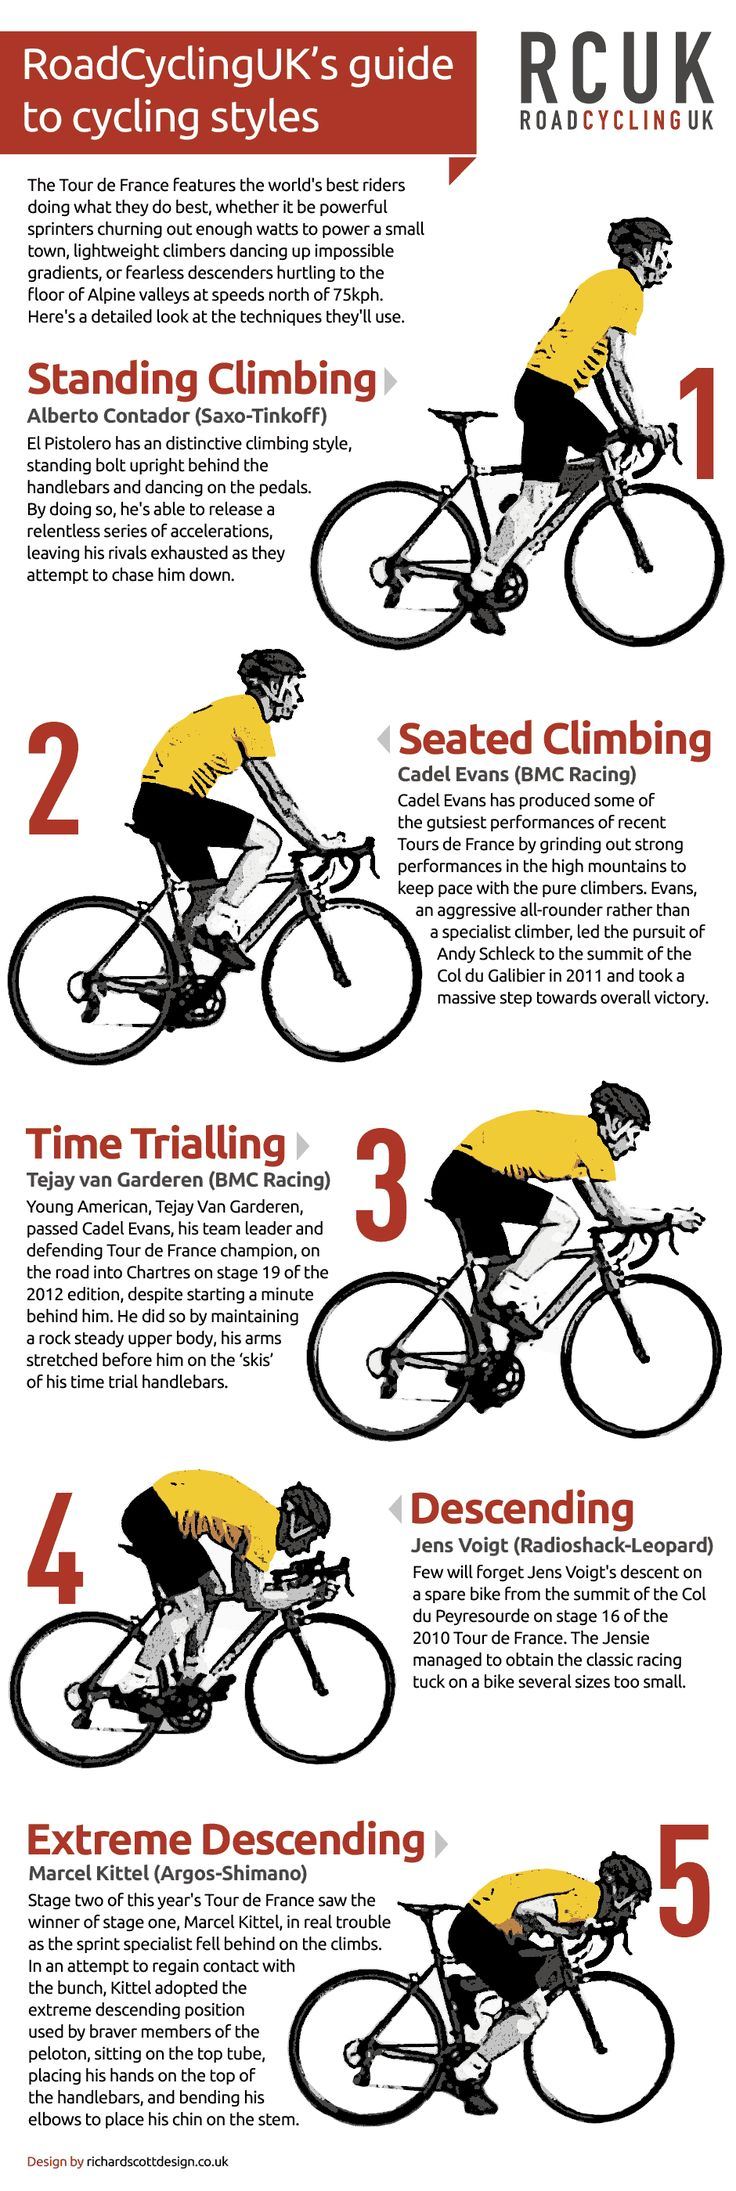 Tour de France 2013: Infographic – RoadCyclingUK's guide to riding styles | Road Cycling UK.